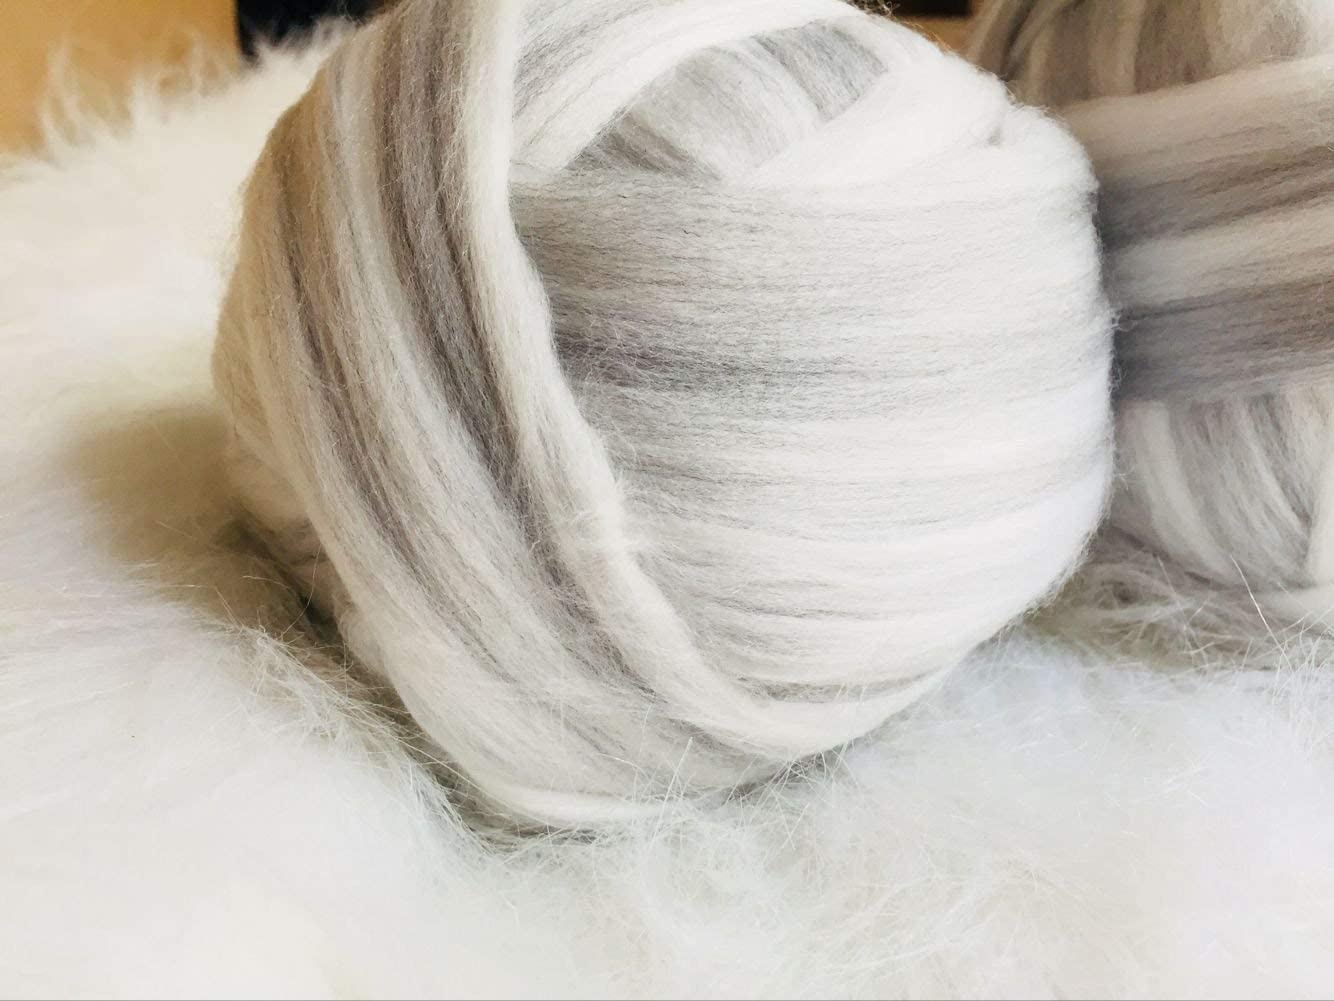 Merino Super Soft Chunky Blended Wool Yarn Combed Top Roving for Arm Knitted Throw Blankets DIY Hand Spinning Felting Dryer Balls White and Grey, 17oz-25yards